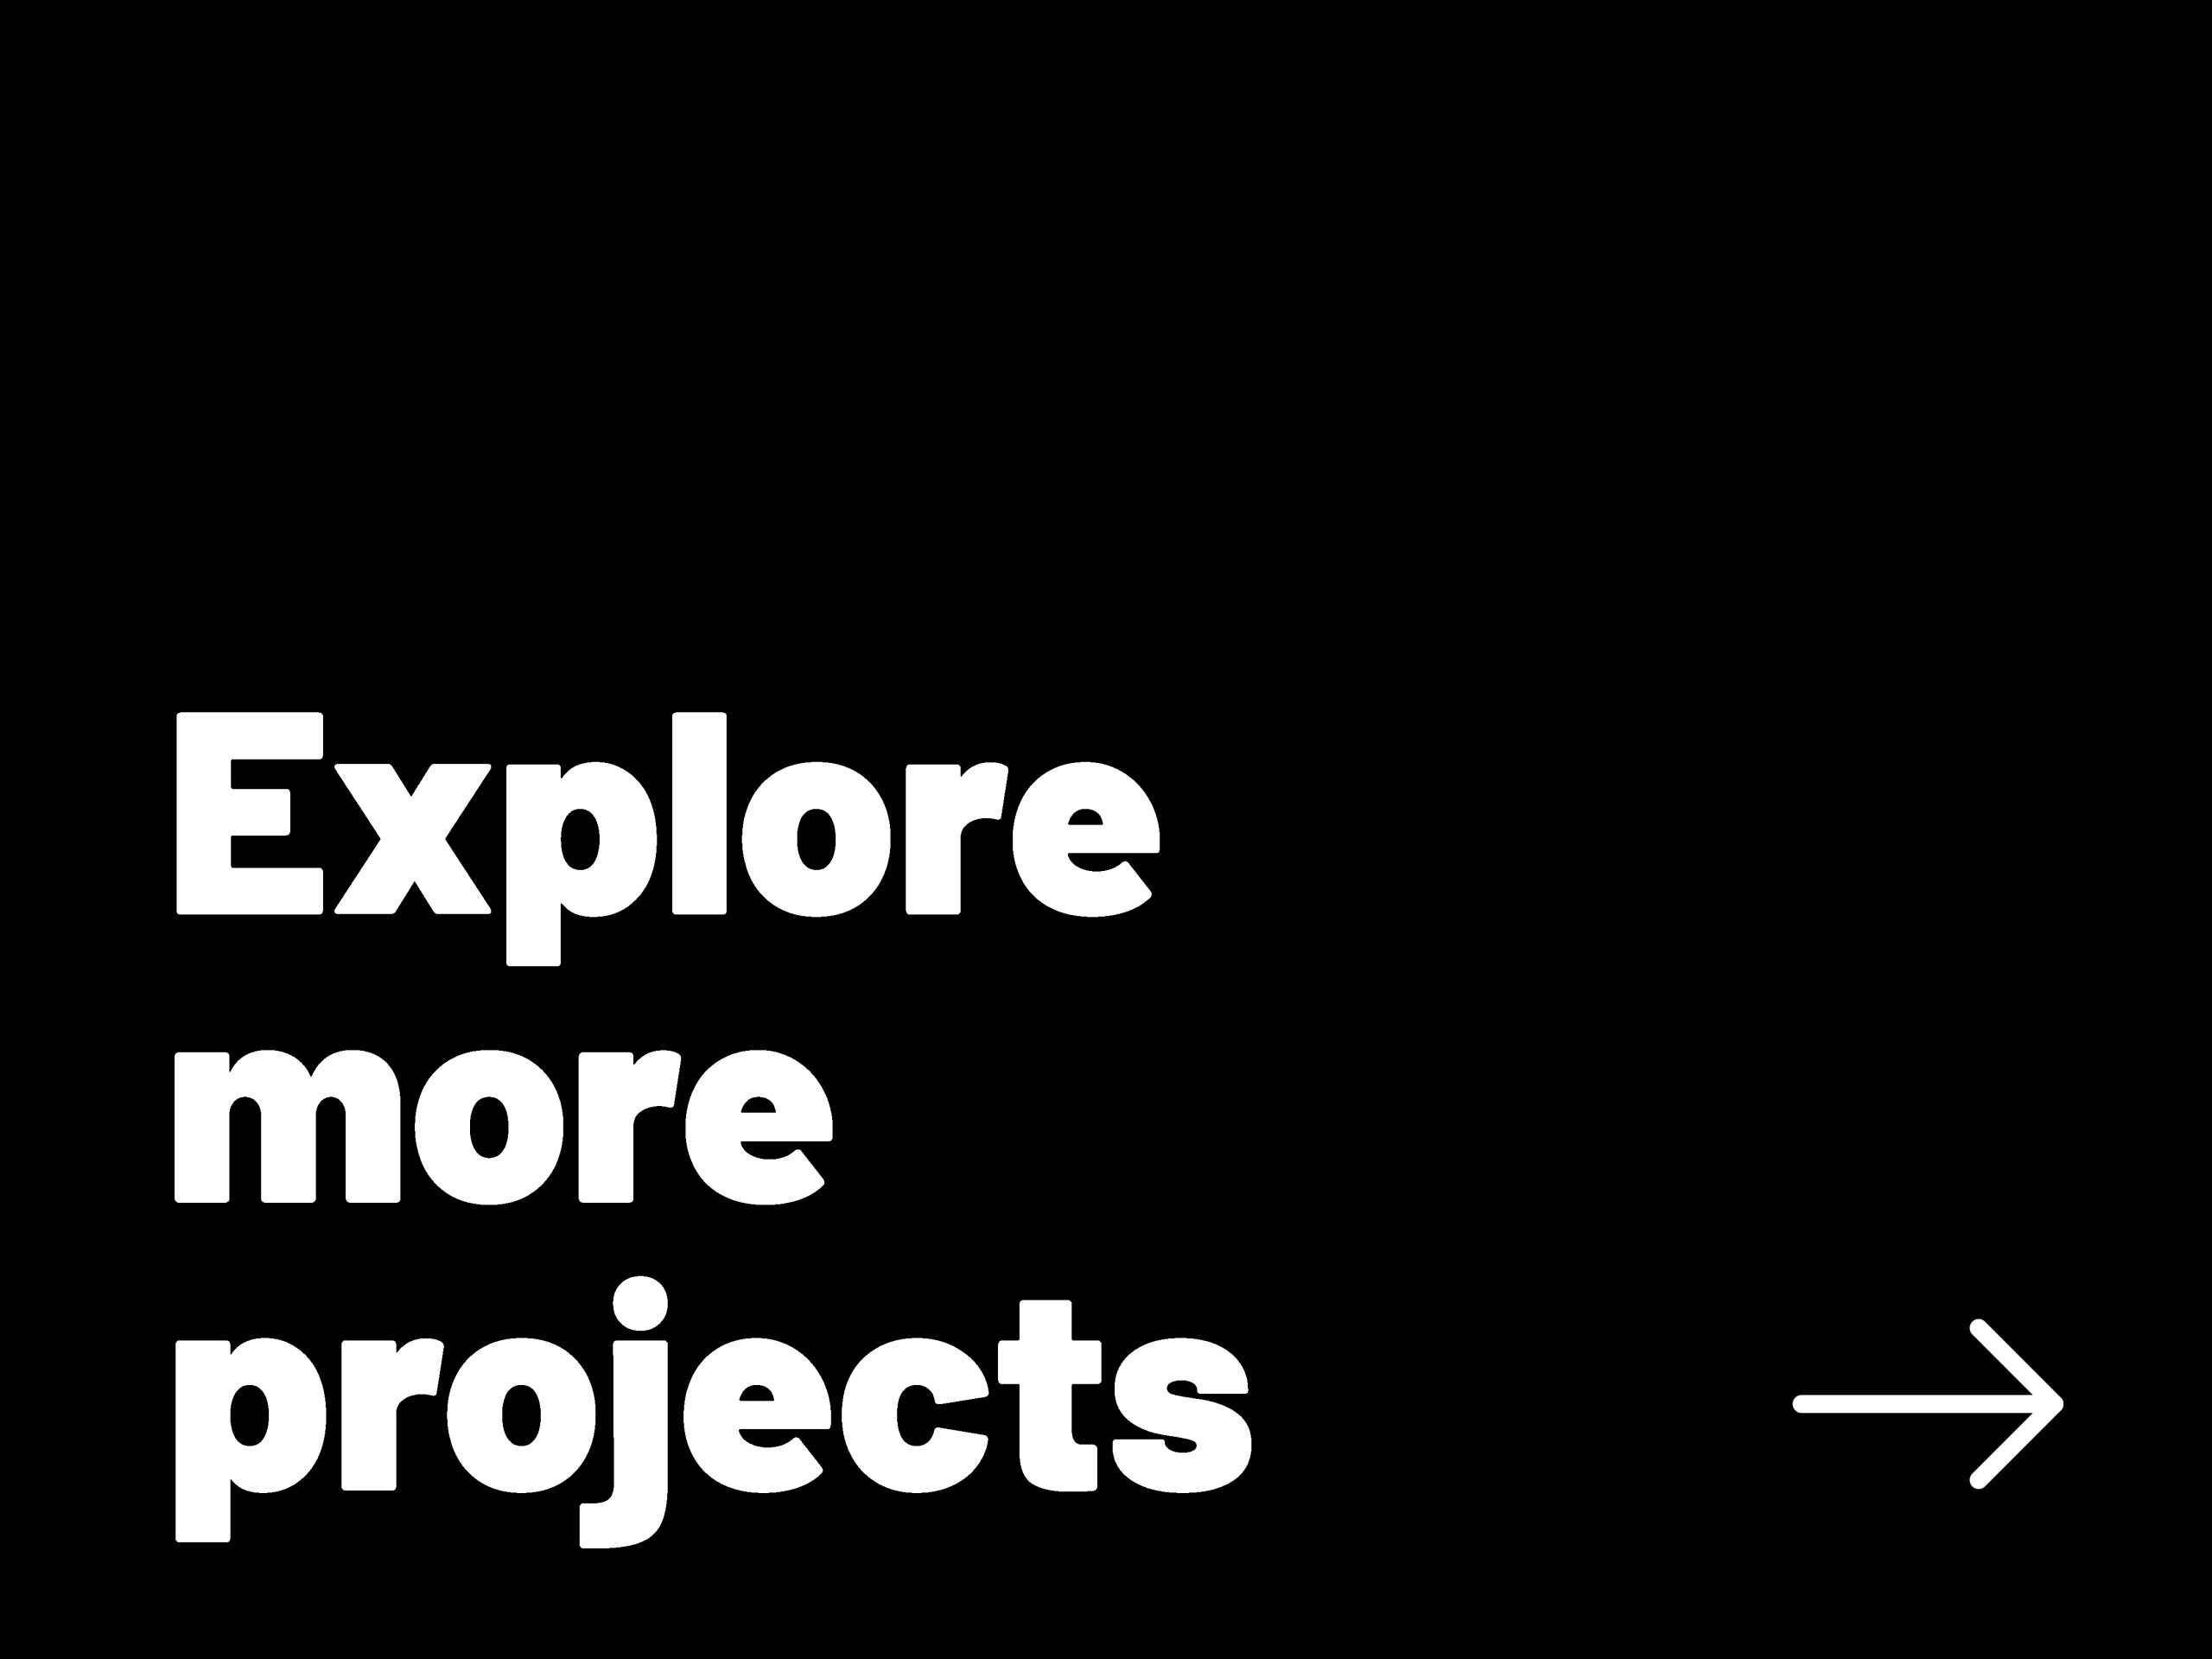 Explore more projects